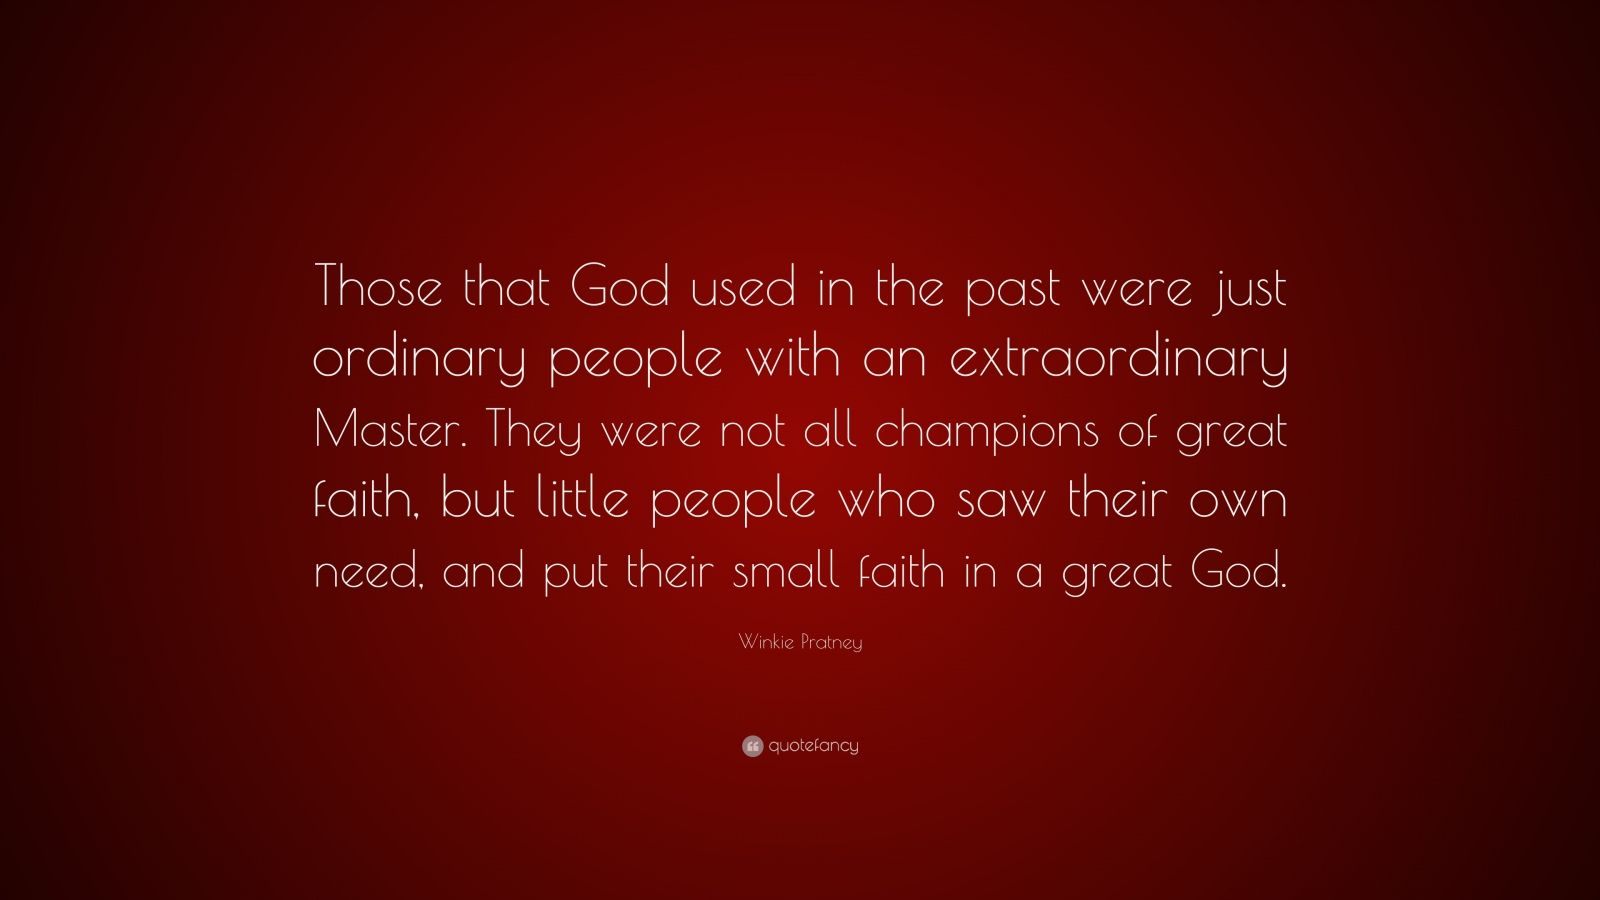 """Winkie Pratney Quote: """"Those that God used in the past were just ordinary people with an extraordinary Master. They were not all champions of great faith, but little people who saw their own need, and put their small faith in a great God."""""""